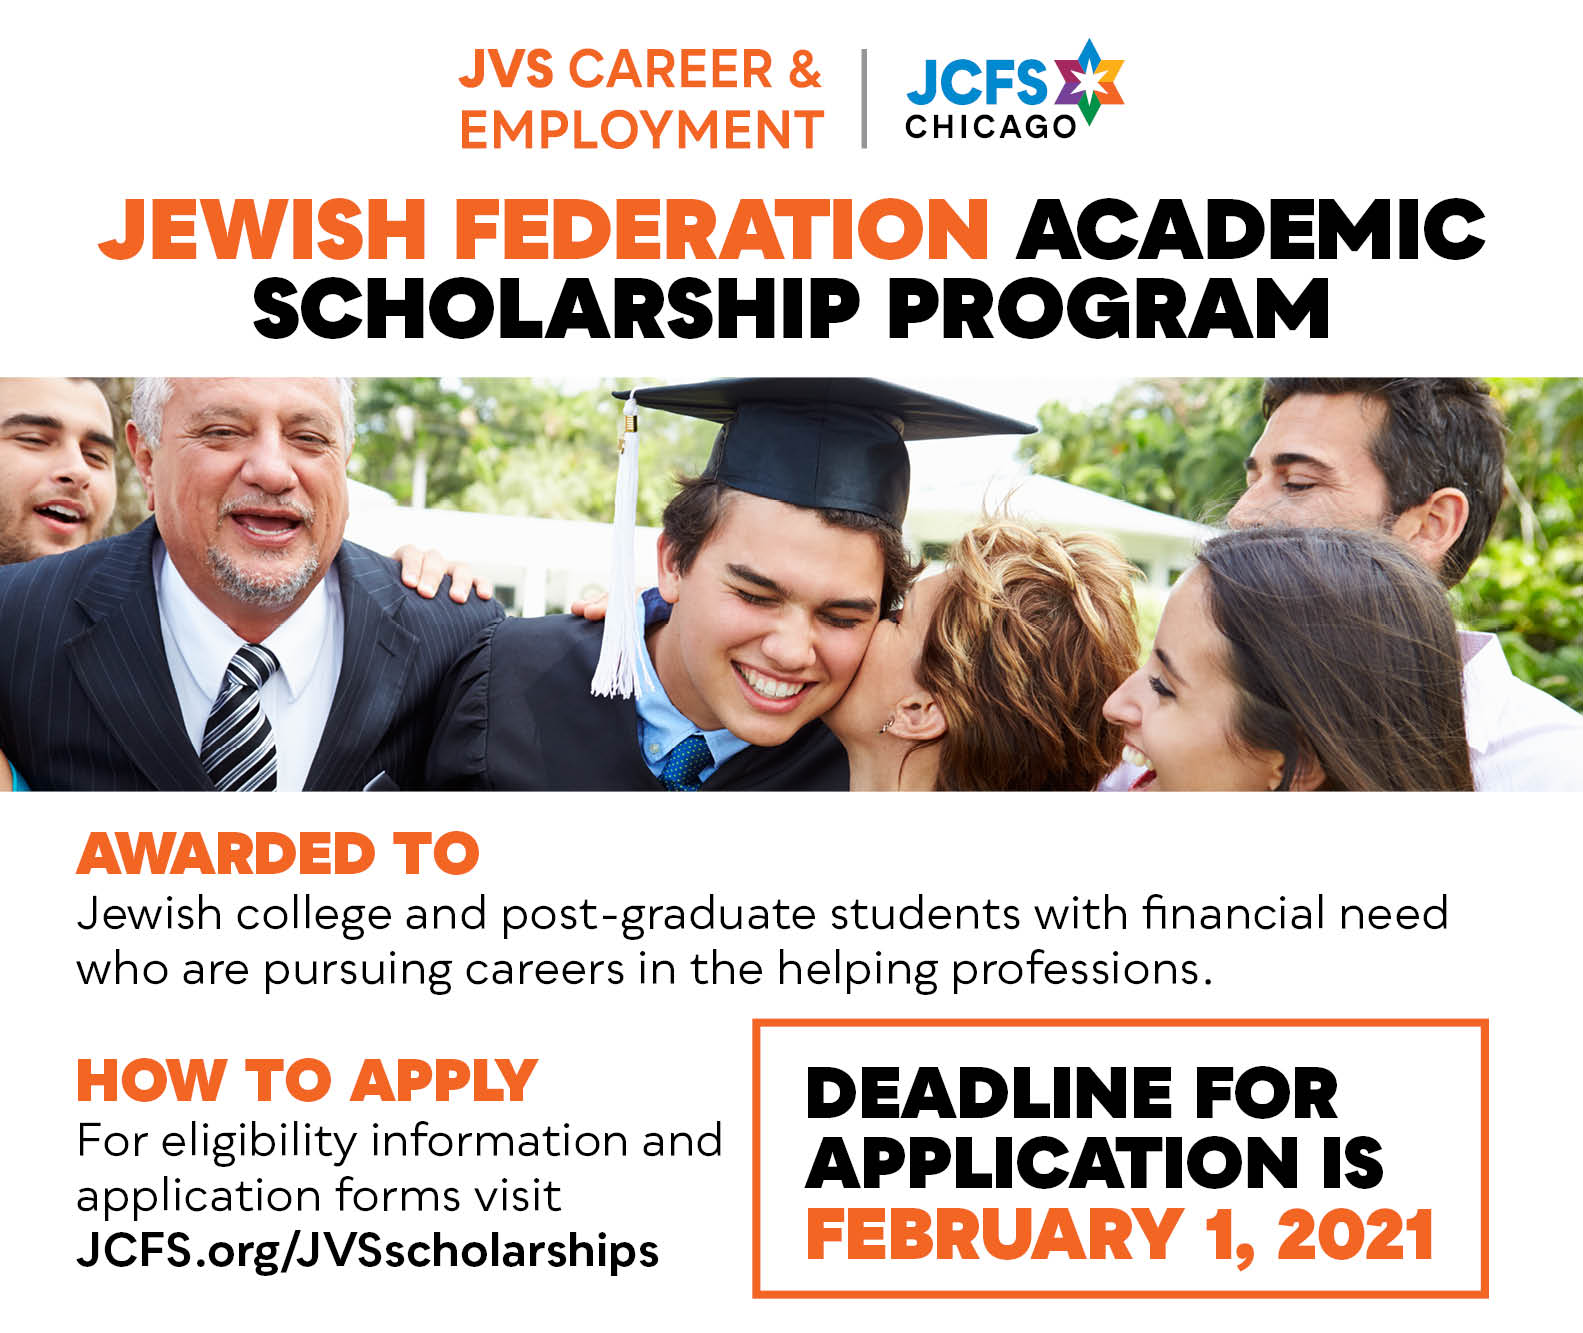 JCFS Chicago JVS Scholarships